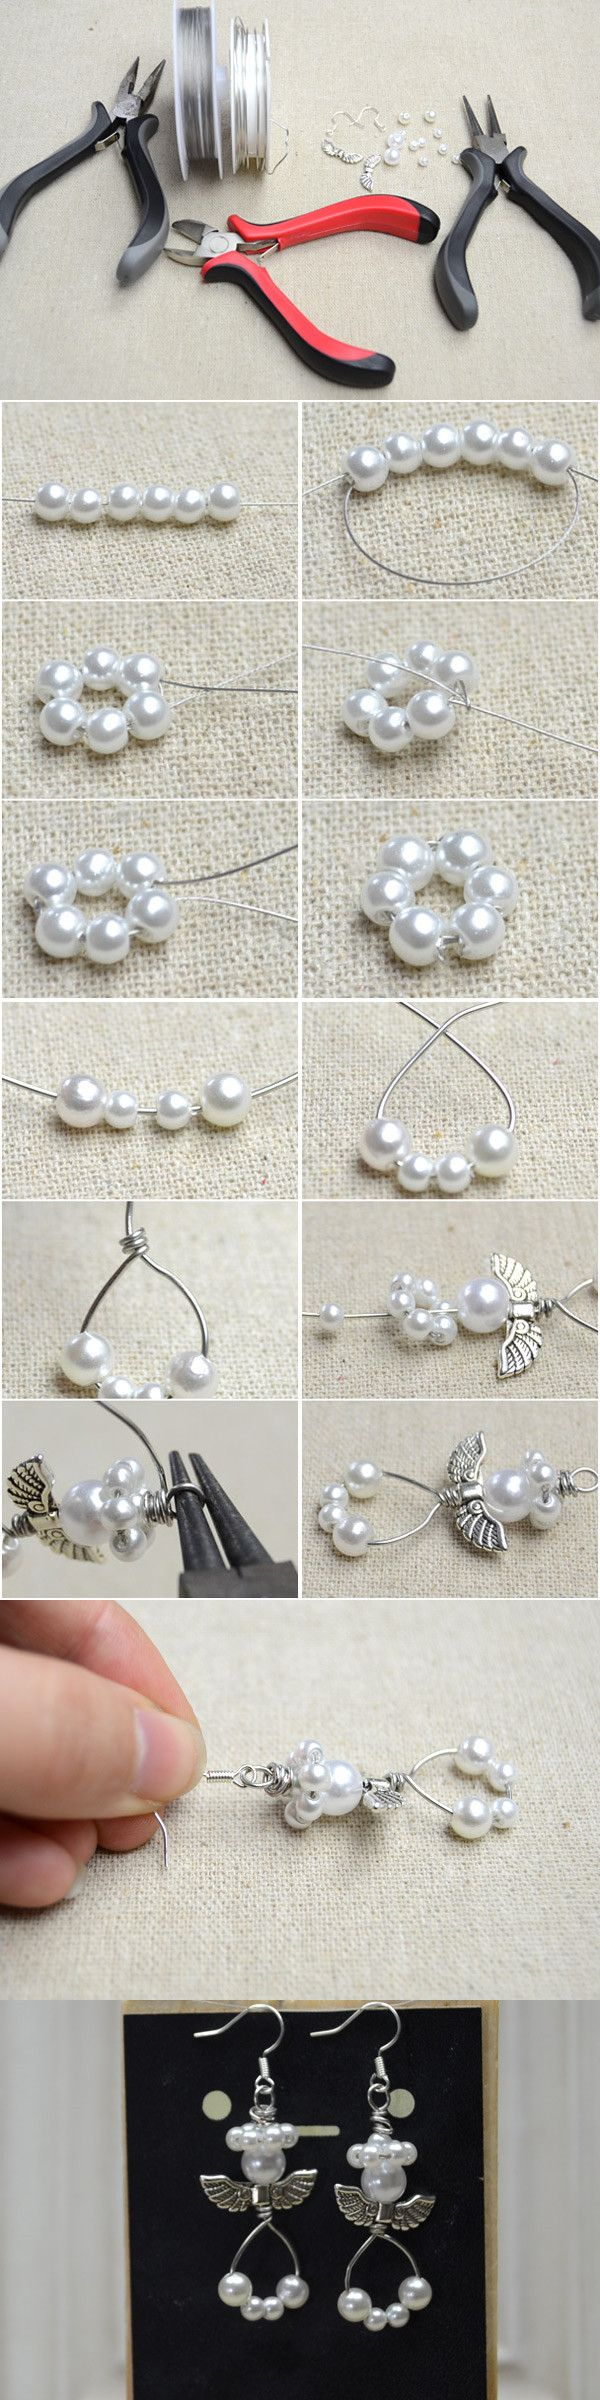 Quick Tutorial on How to Make Angel Earrings with Pearls and Wires from LC.Pandahall.com